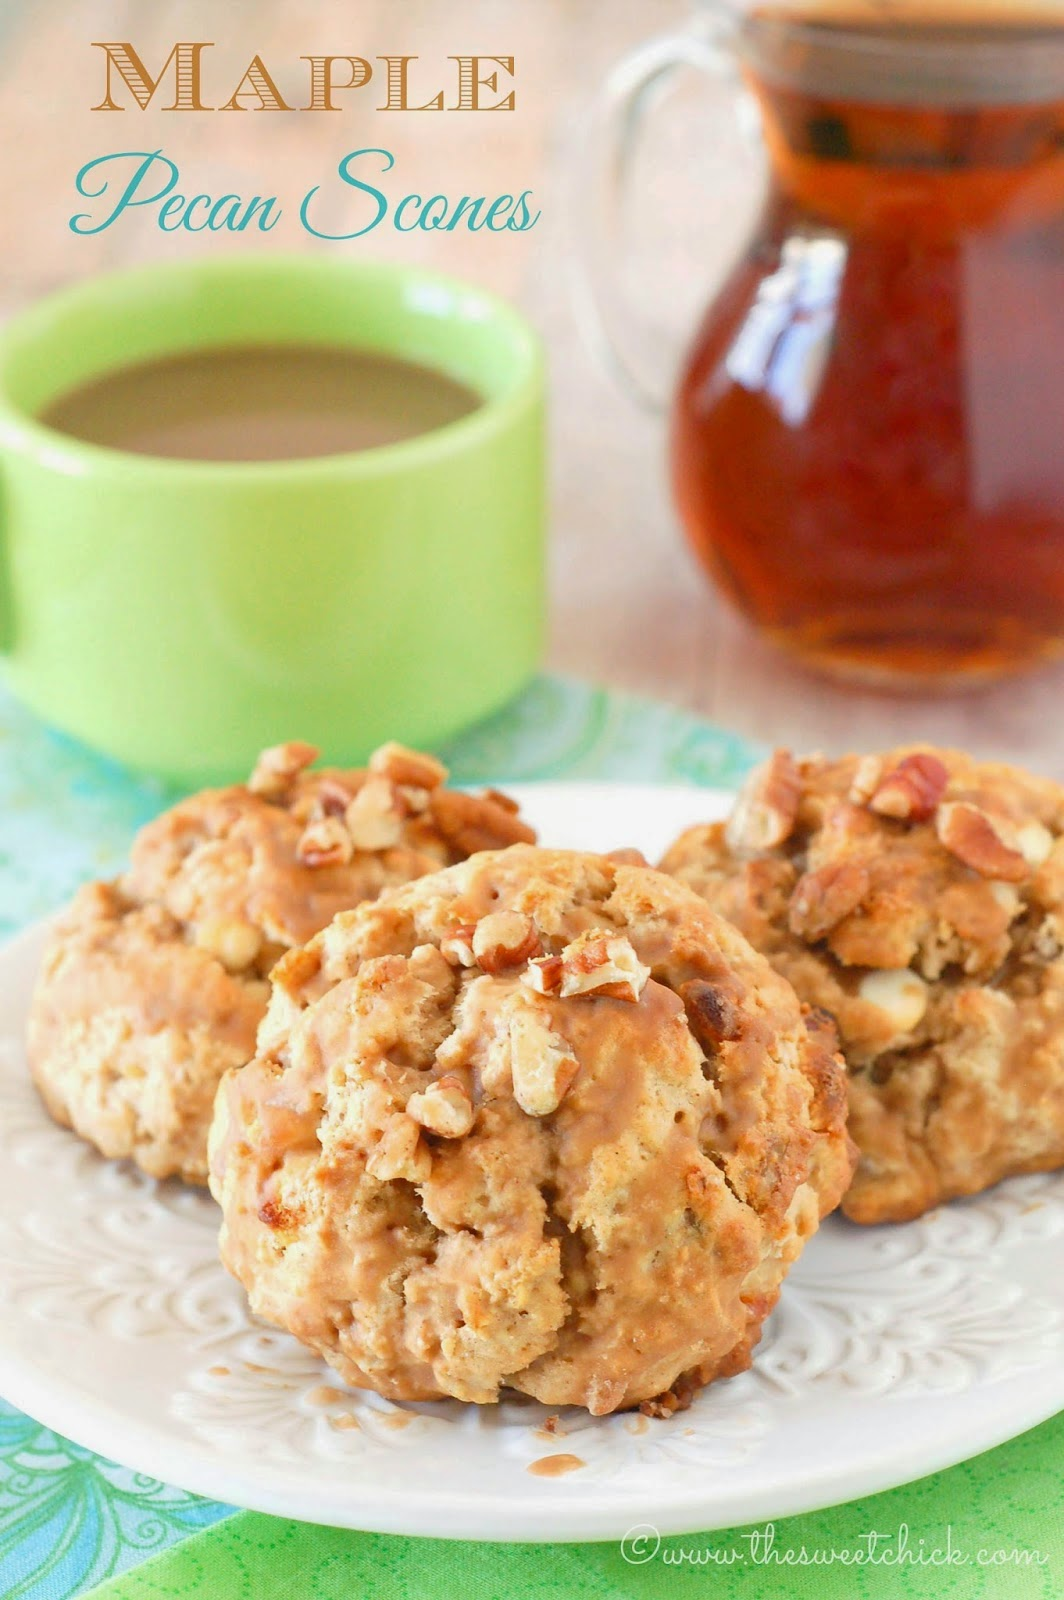 Maple Pecan Scones by The Sweet Chick